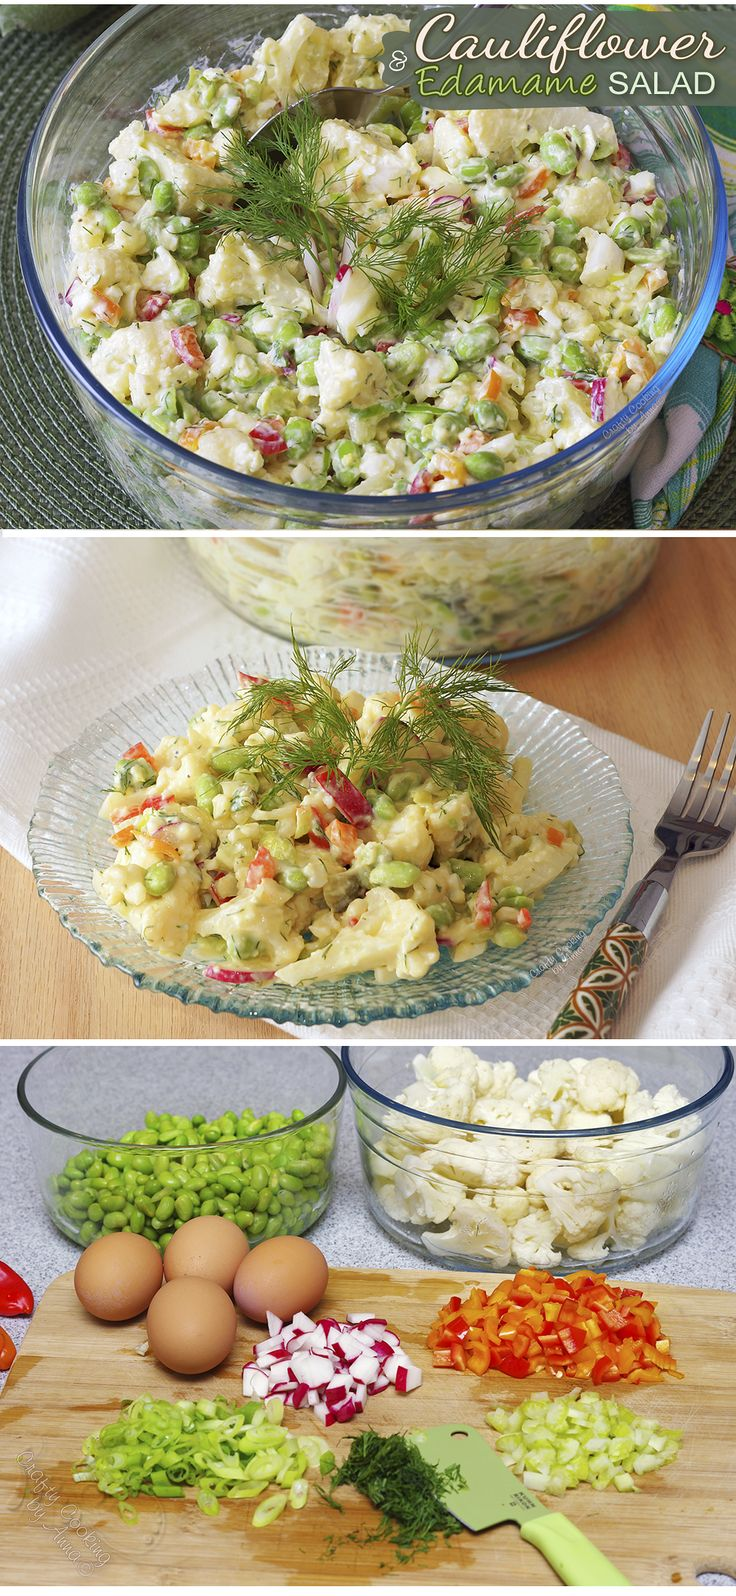 Healthy Cauliflower and Edamame Salad! Low-Calorie alternative to the potato salad! #easy #delicious #satisfying